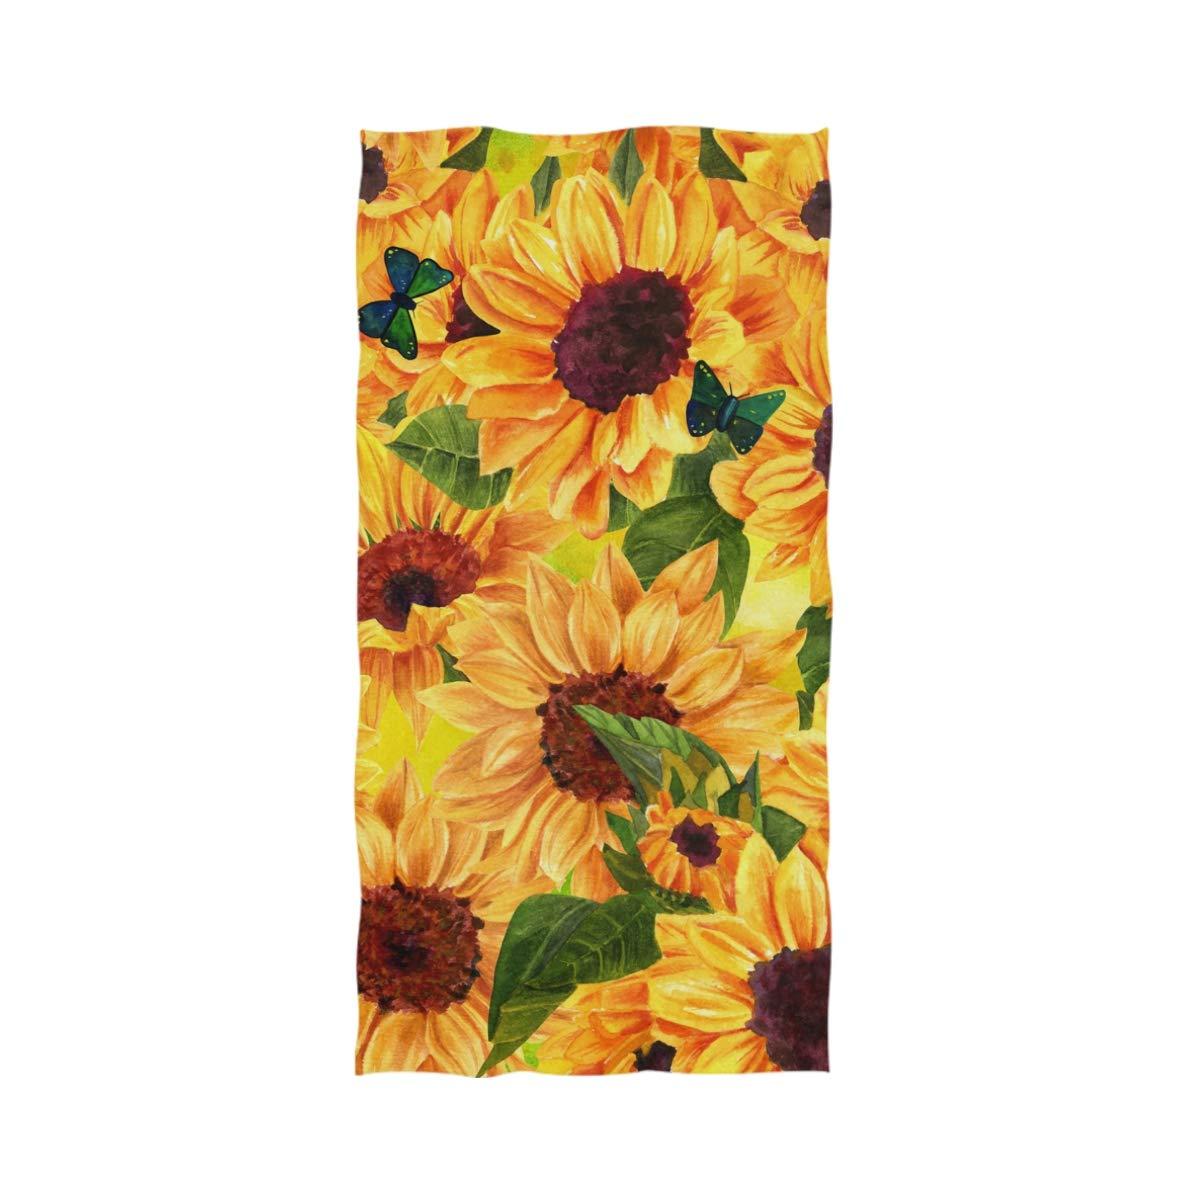 "Naanle Chic Vibrant Yellow Sunflower Butterflies Soft Large Decorative Eco-Friendly Hand Towels Bath Towel Multipurpose for Bathroom, Hotel, Gym and Spa (16"" x 30"",Floral)"